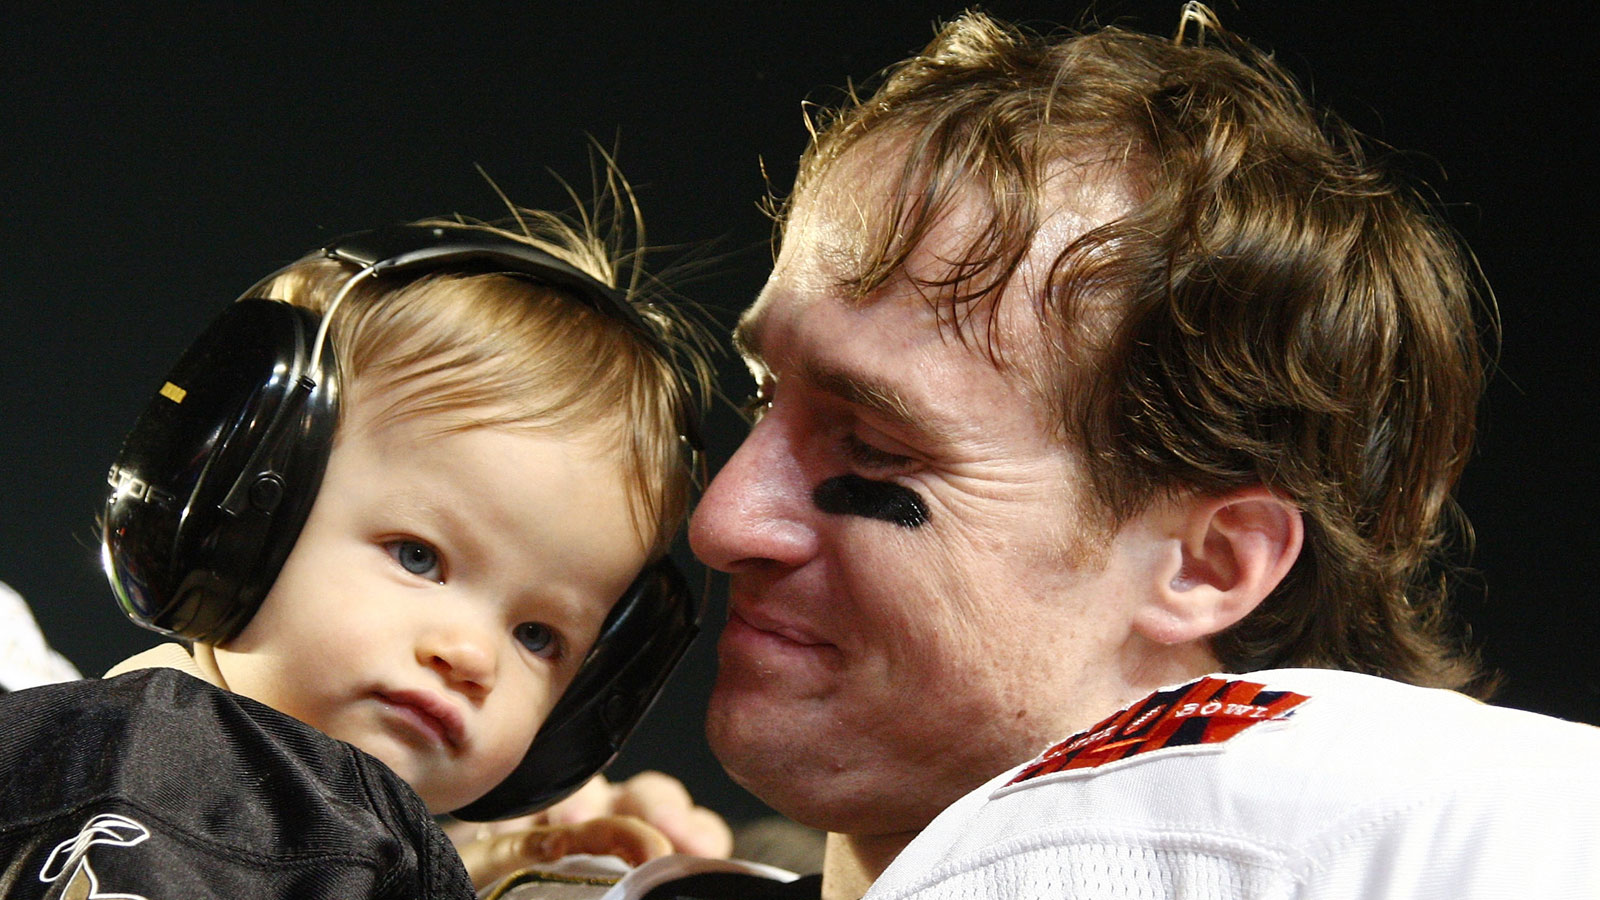 Drew brees family photos Accutane: 30 Years of Trading our Sex Lives for Clear Skin